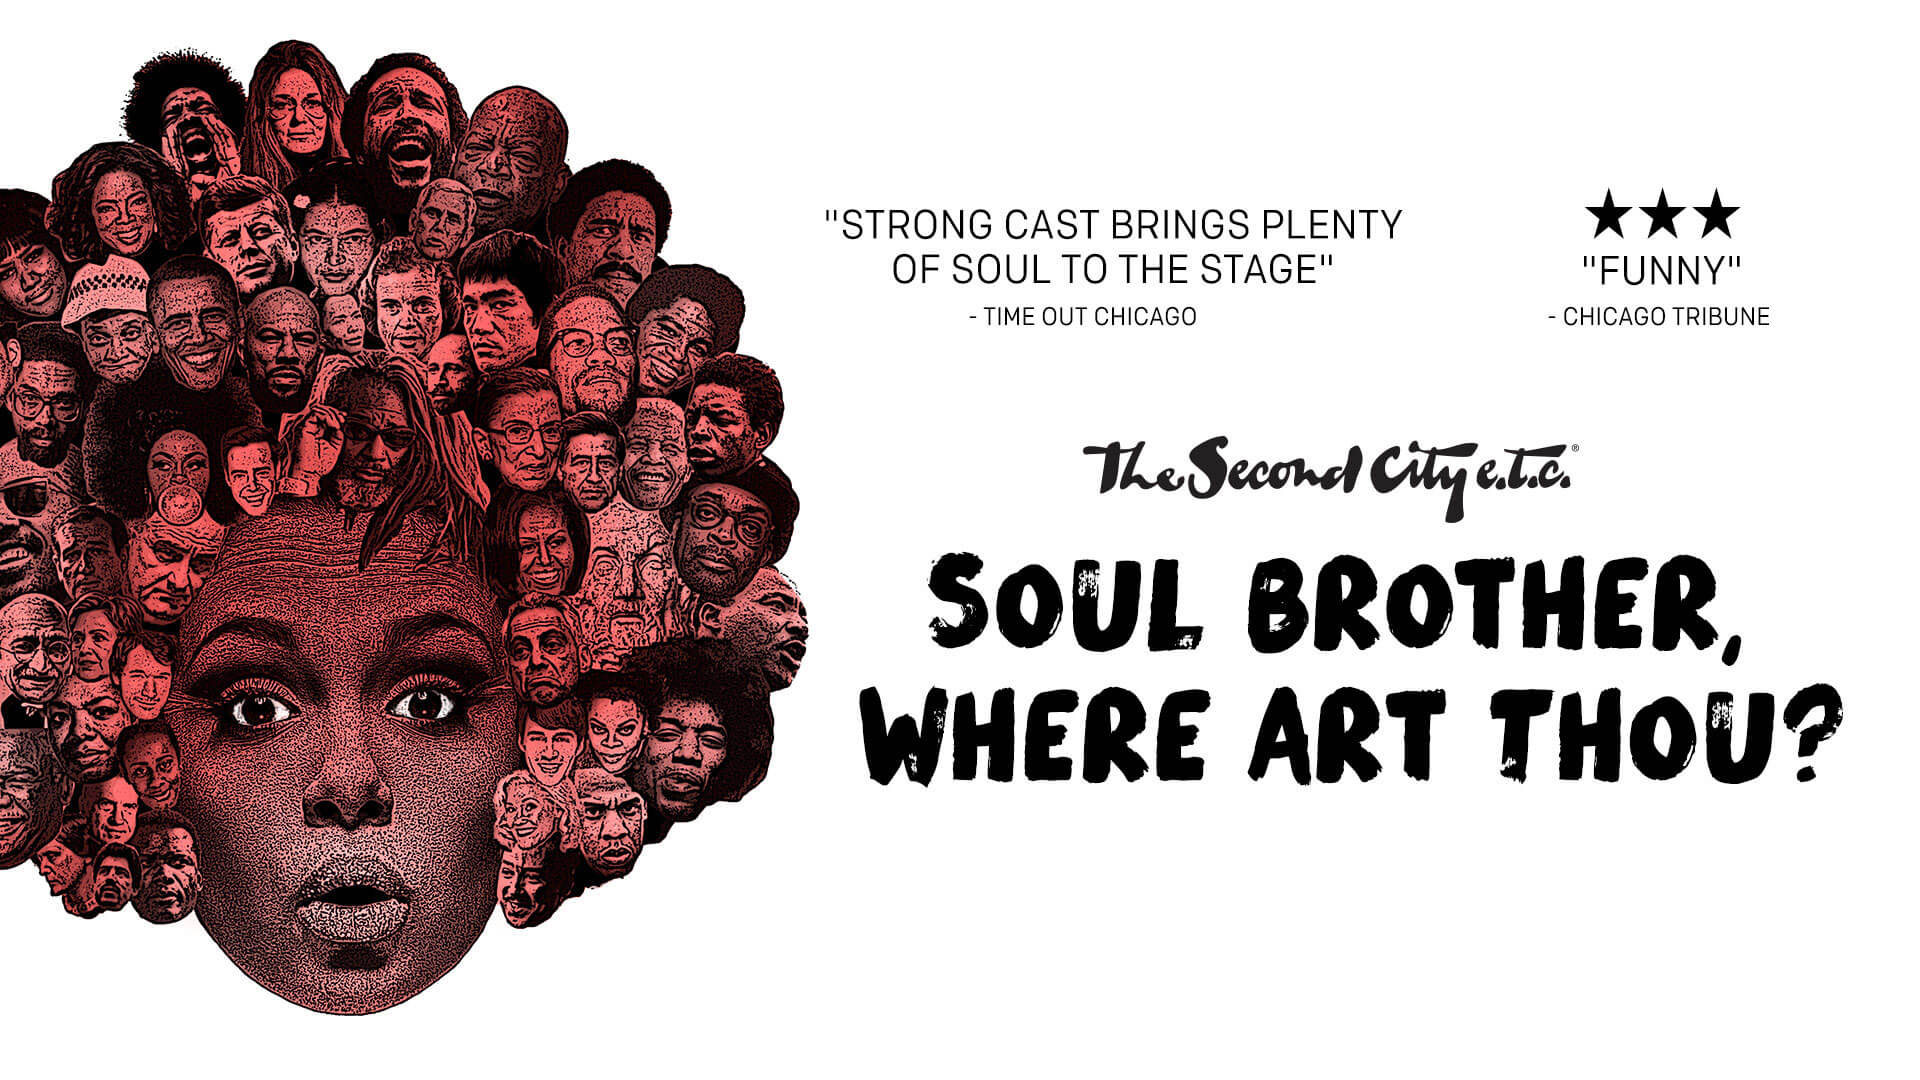 The Second City e.t.c.'s 39th Revue-Soul Brother, Where Art Thou?